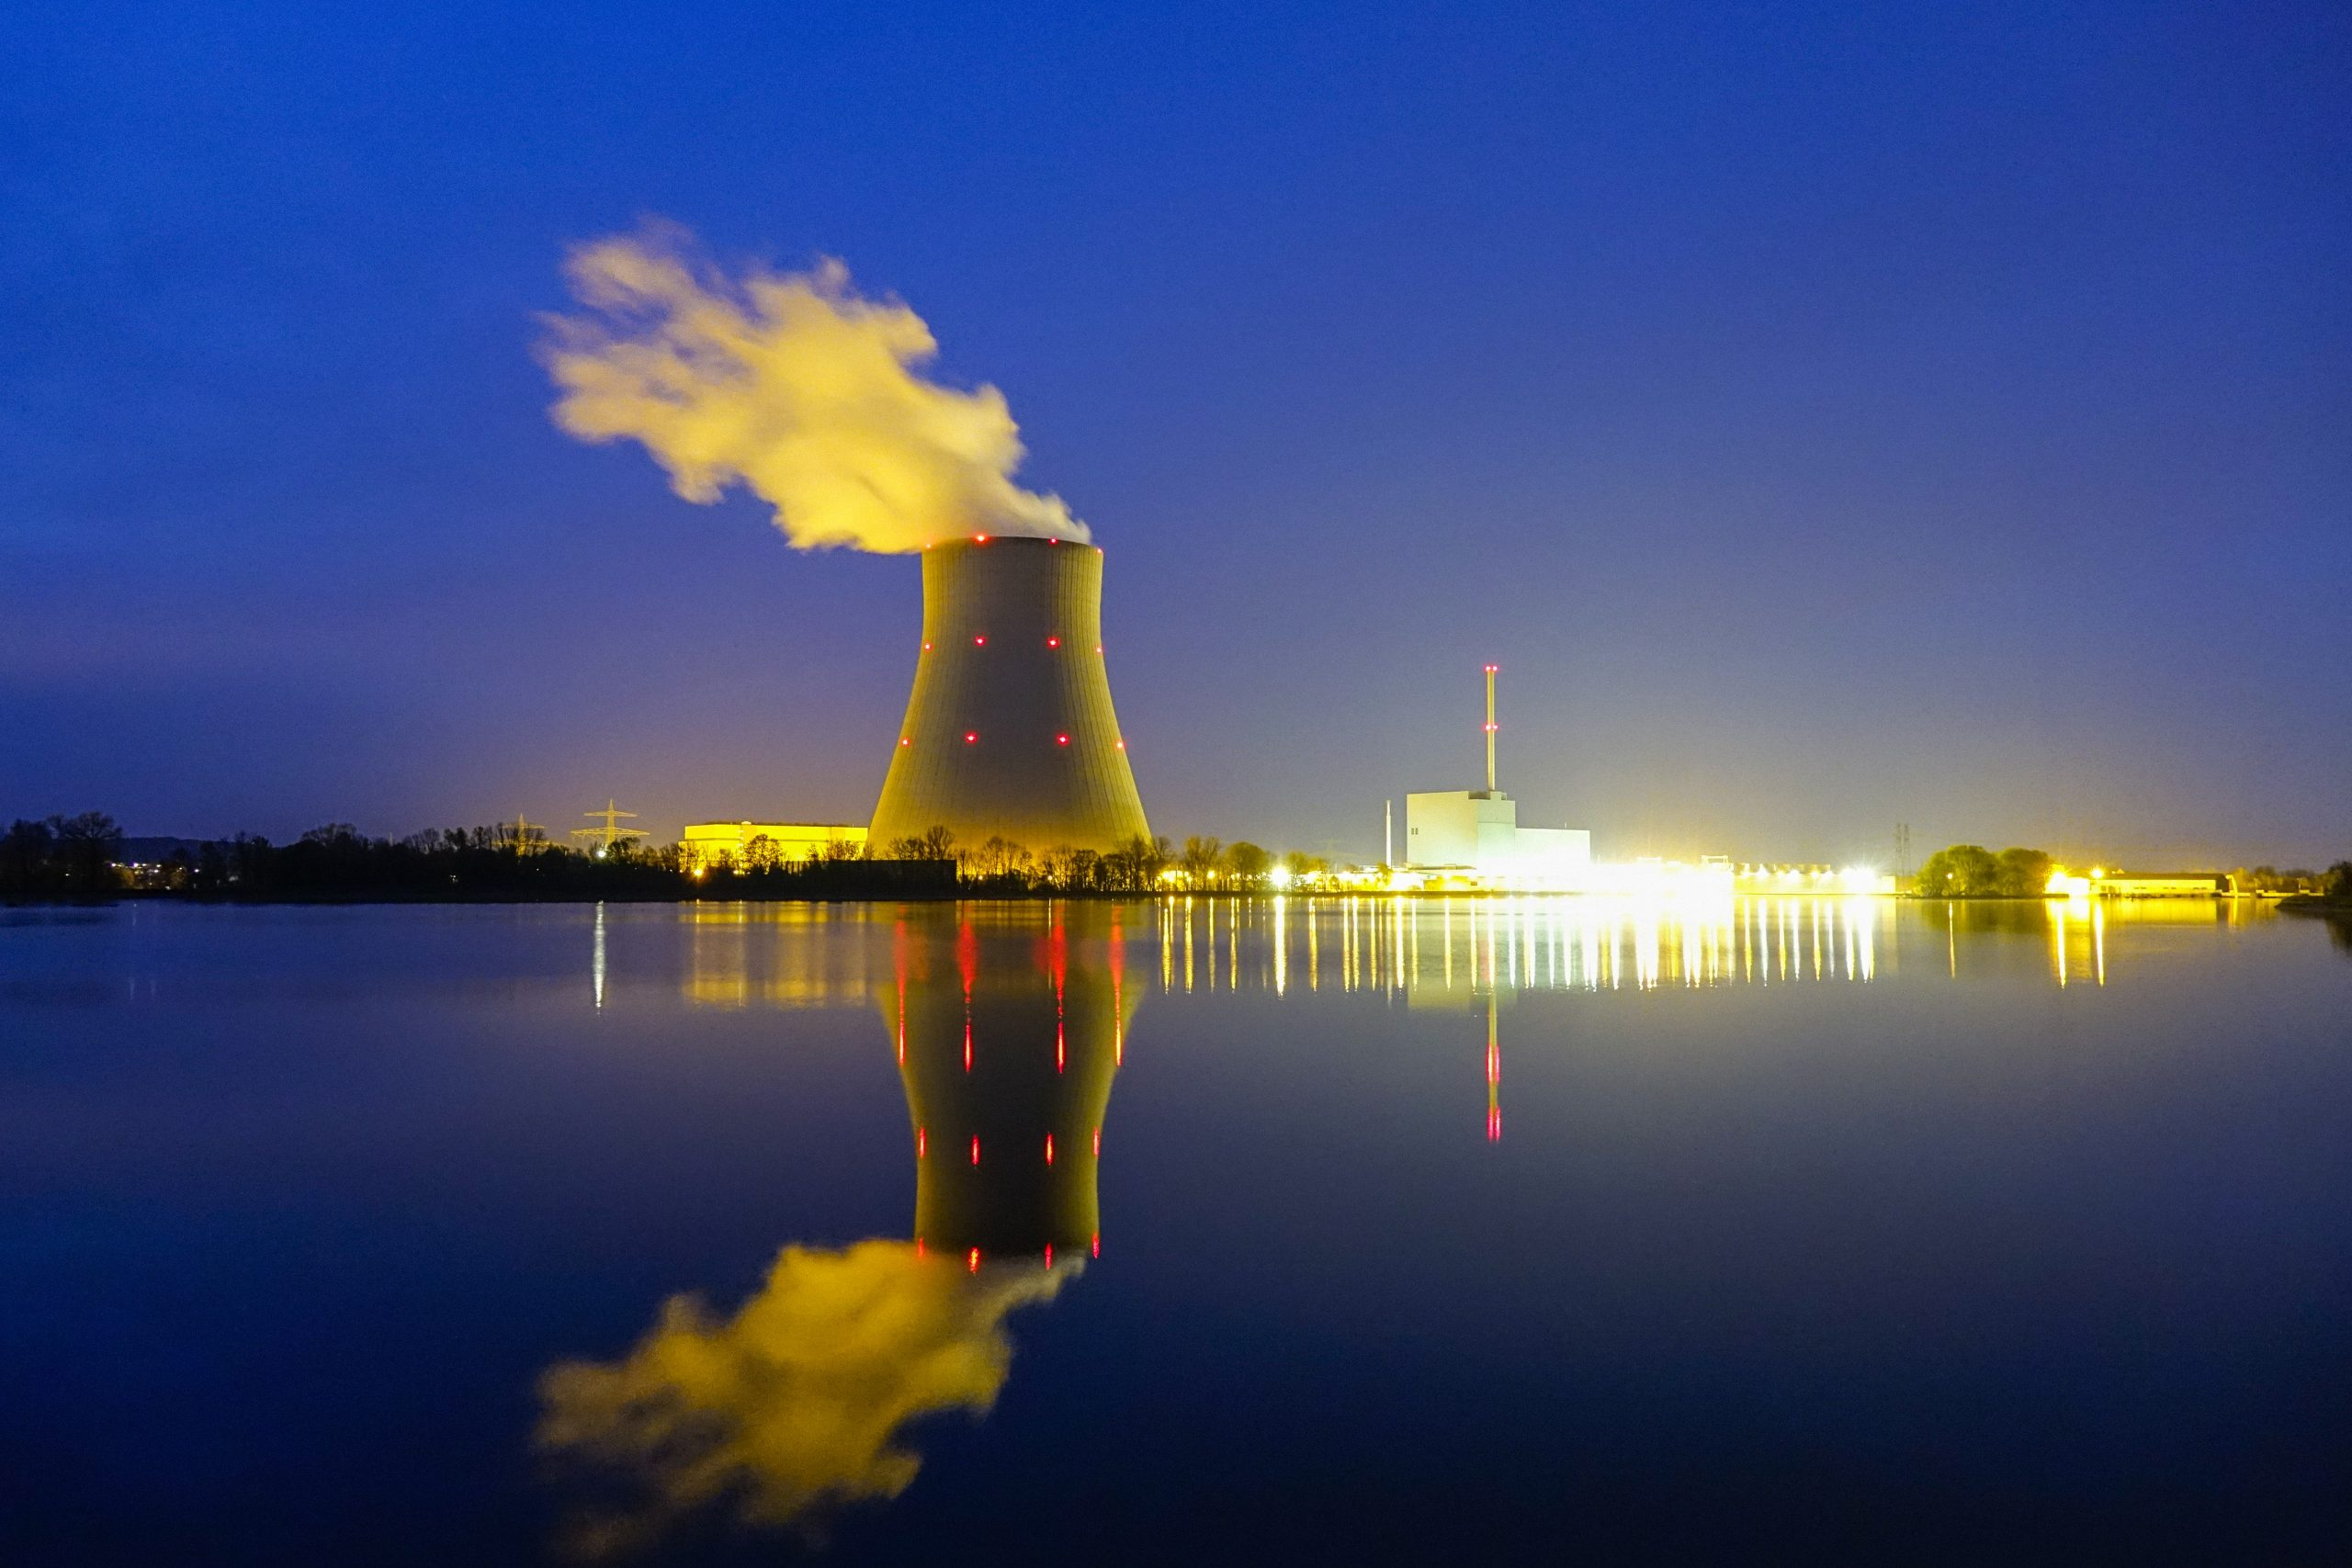 Image complements the text of the article. The image shows a nuclear power plant at night. Imperia Materials Engineering Lab provides forensic investigation of failed parts and components to power plants during outages.